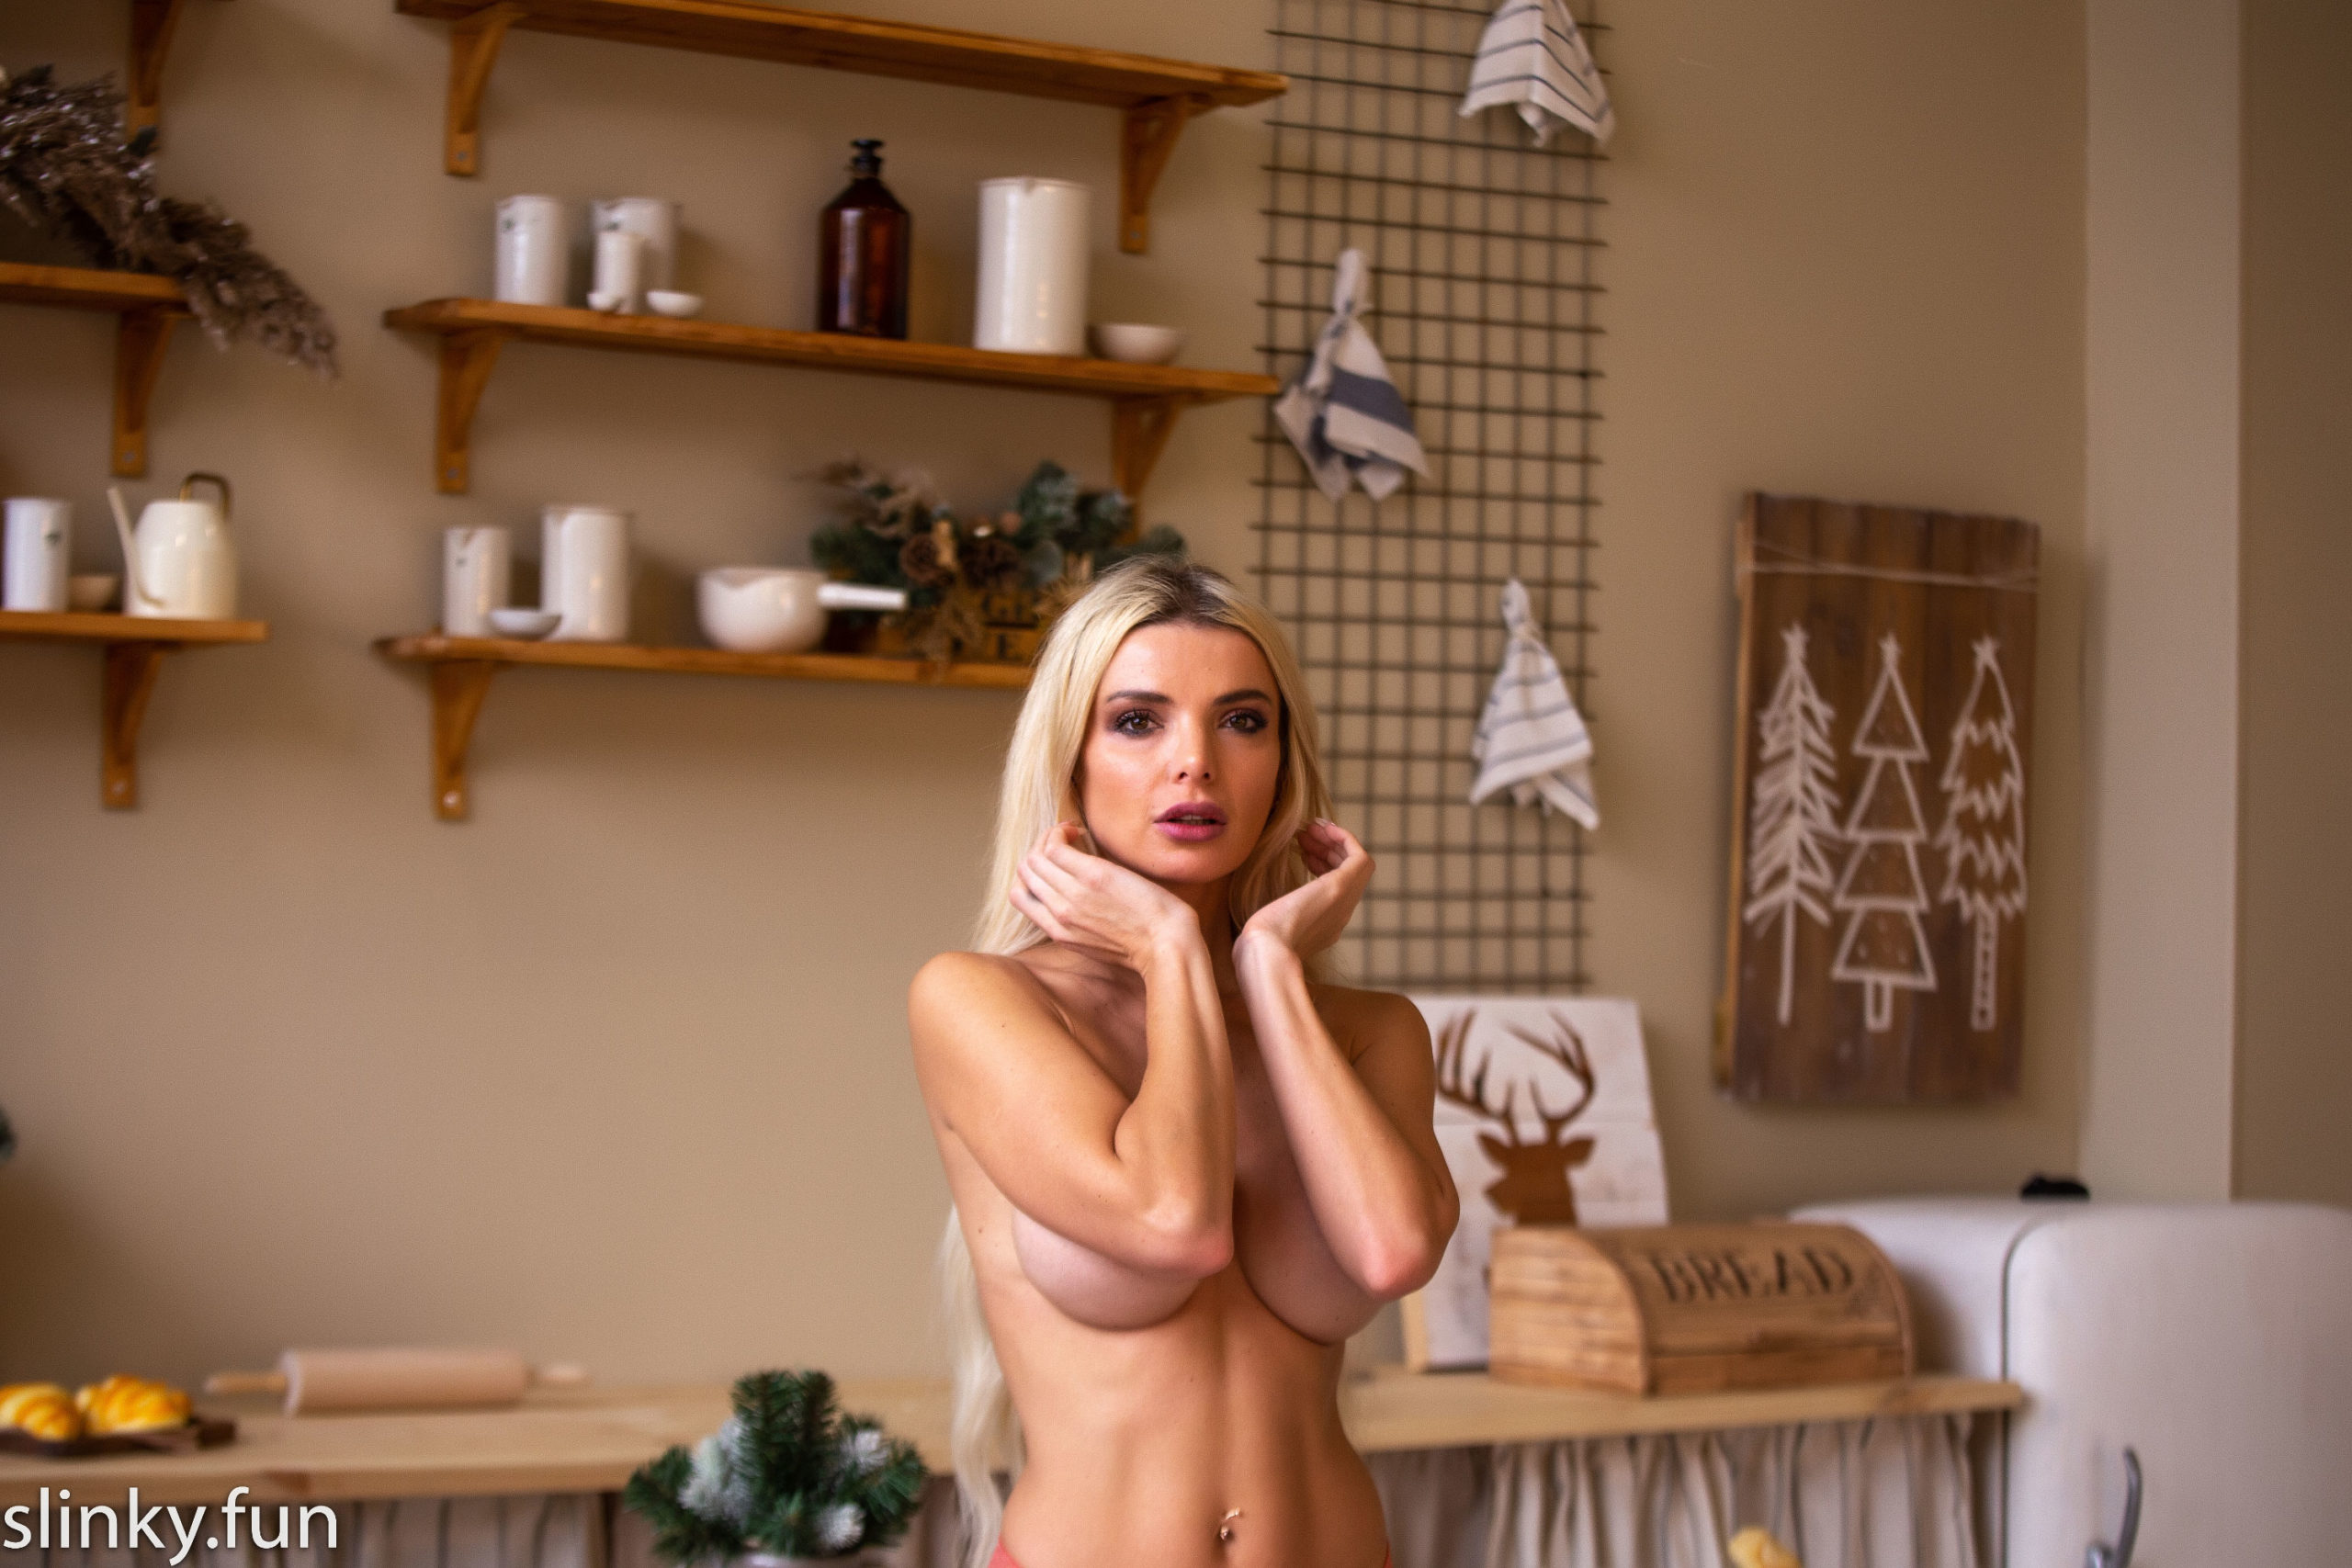 Model Playboy nude Playmate photo